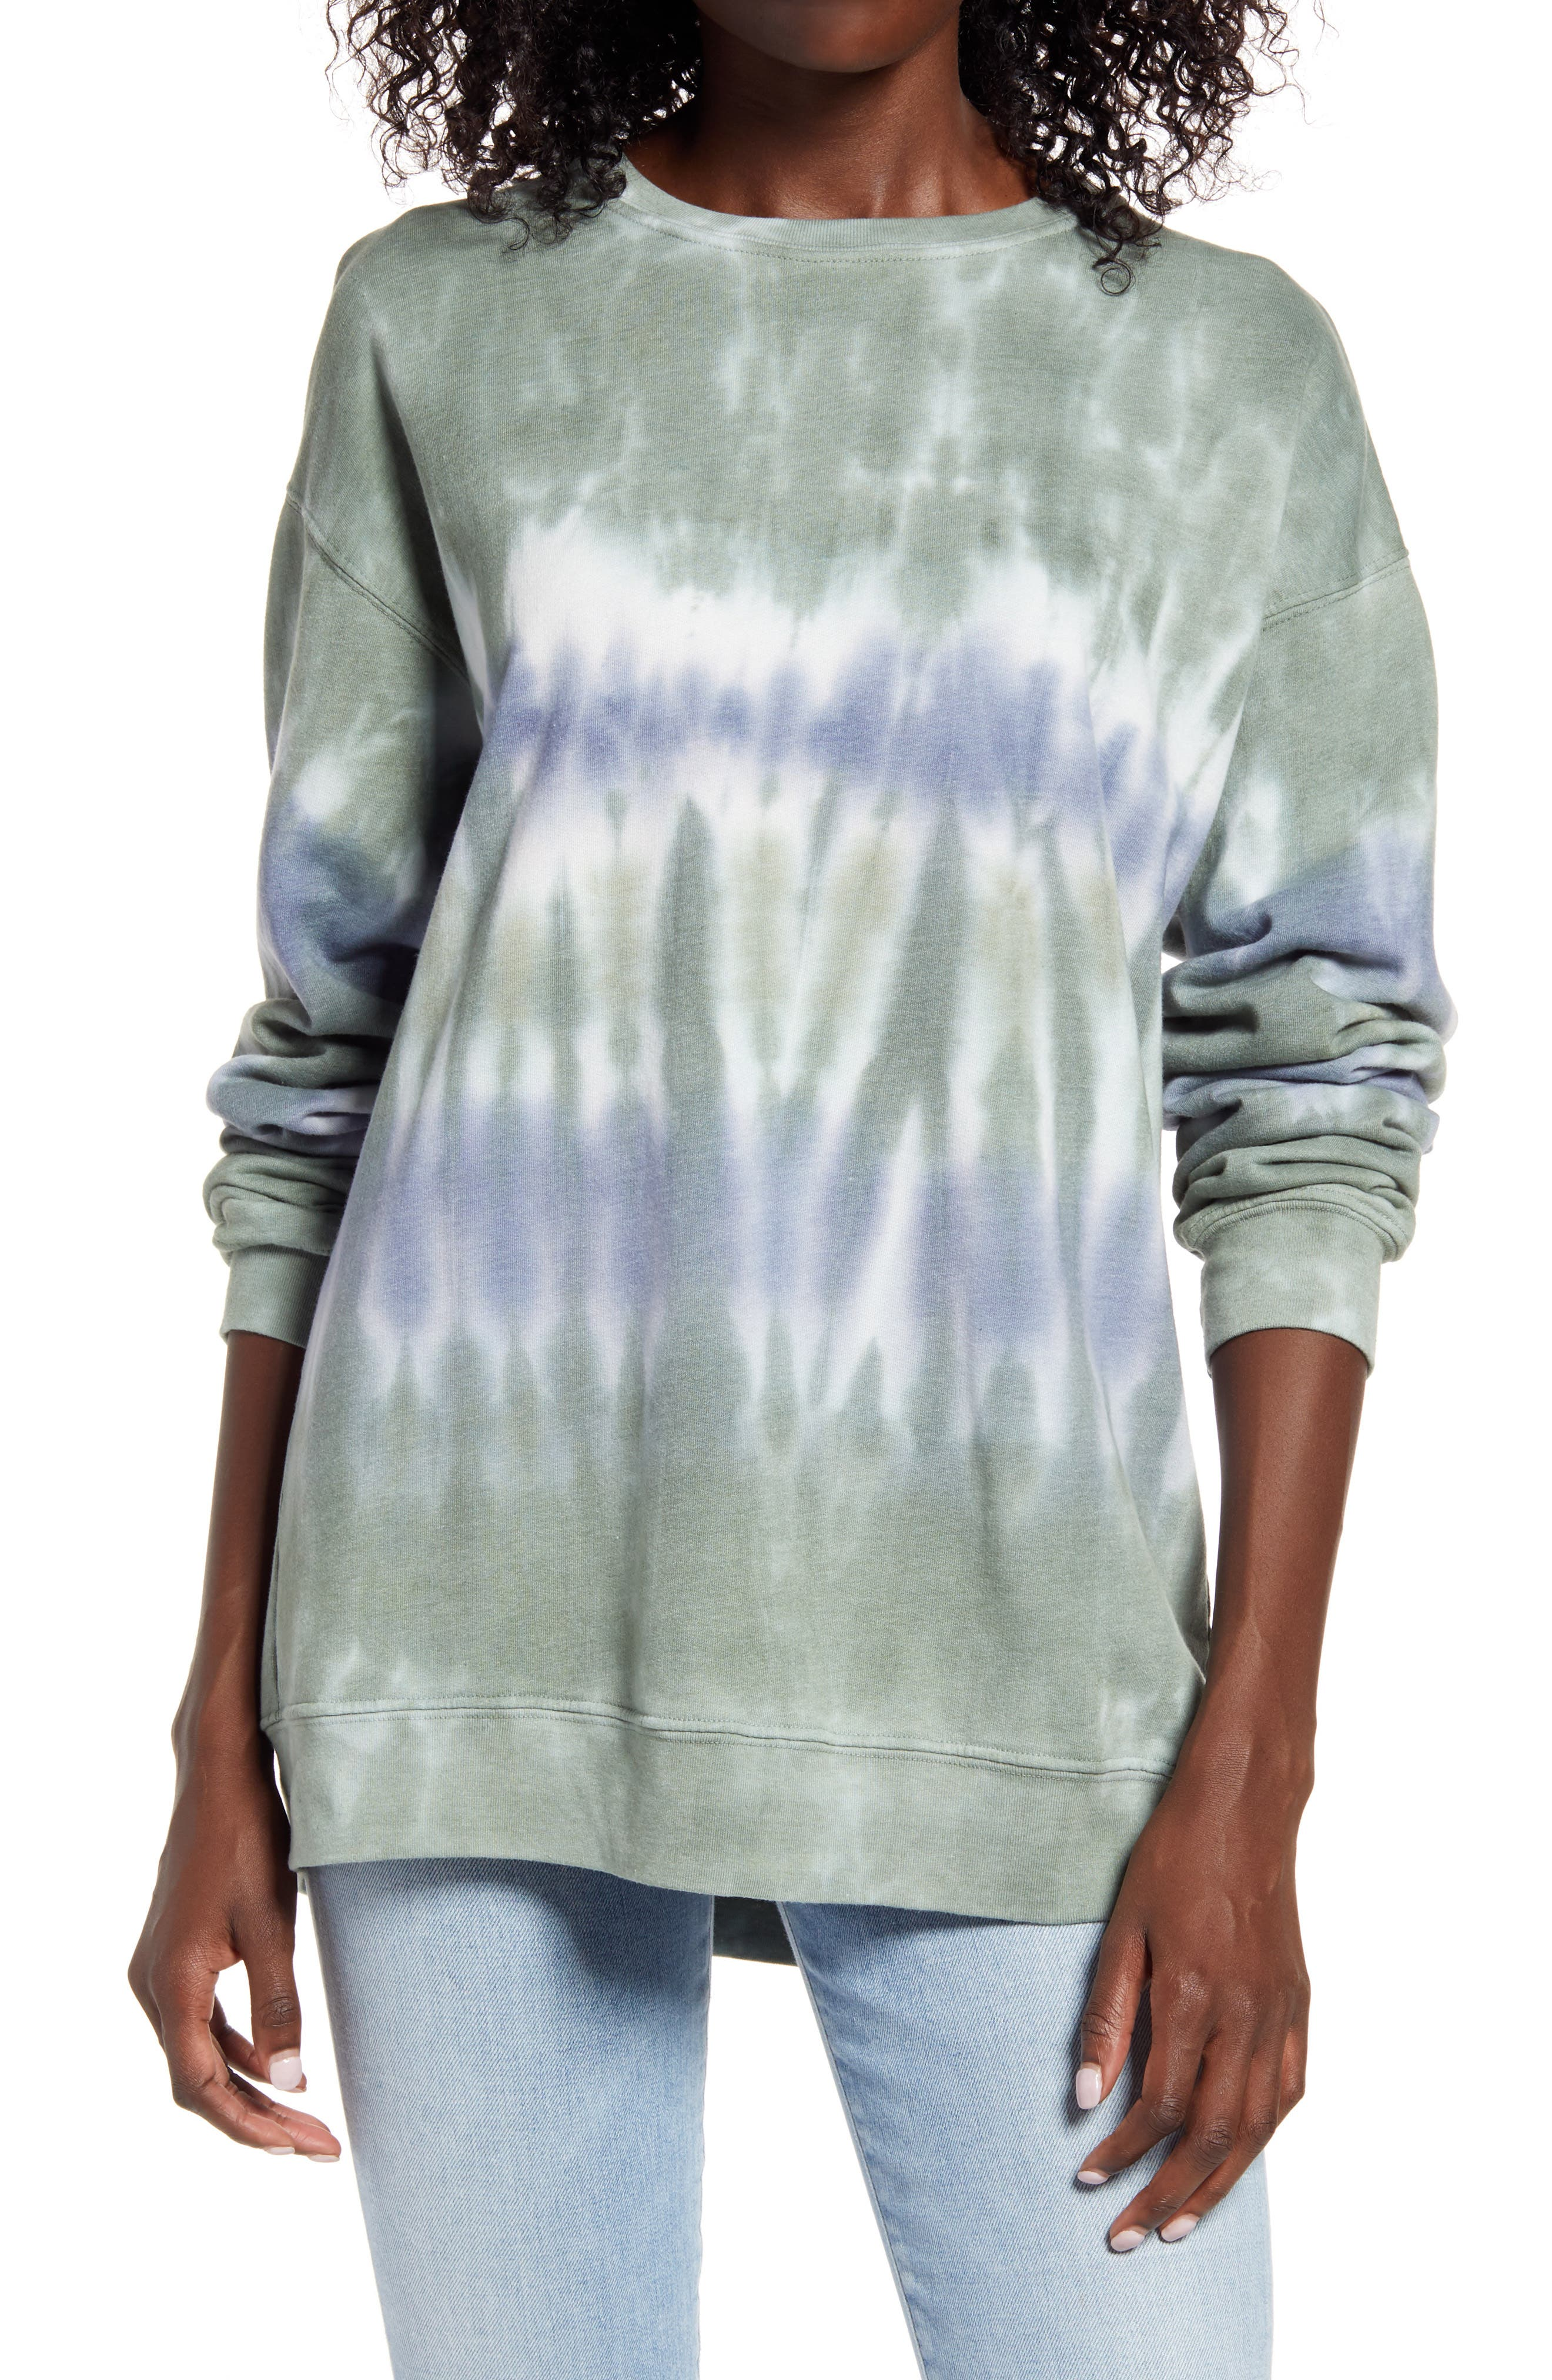 Ever-popular tie dye pops vibrant color into your off-duty look in this cotton-blend sweatshirt you\\\'ll want to wear all weekend. When you buy Treasure & Bond, Nordstrom will donate 2.5% of net sales to organizations that work to empower youth. Style Name: Treasure & Bond Tie Dye Cotton Blend Sweatshirt. Style Number: 5943198. Available in stores.